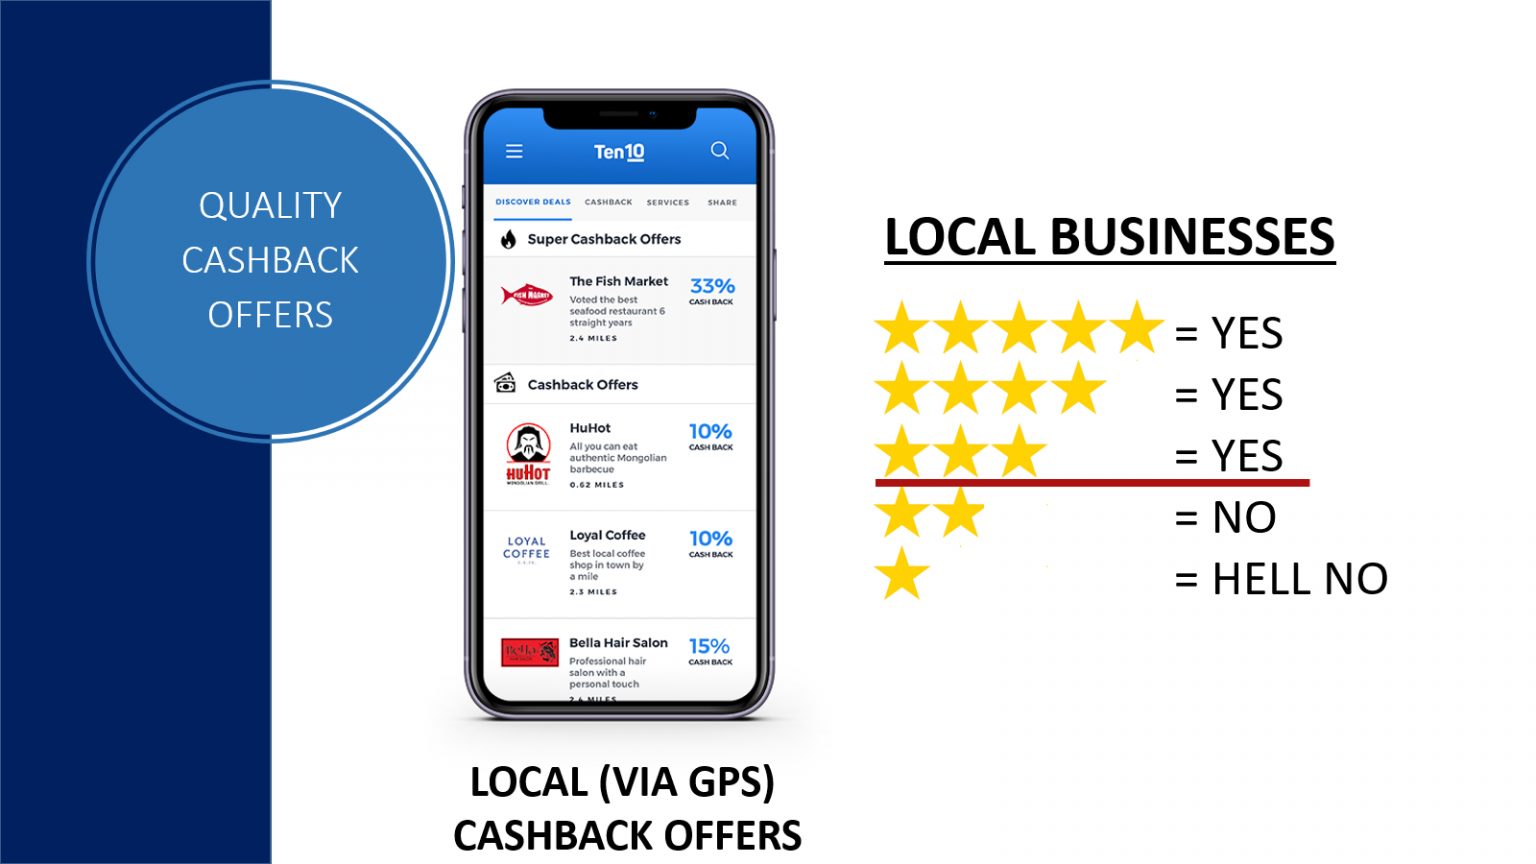 1414 - Quality Local Businesses Offer Cashback - Ten10